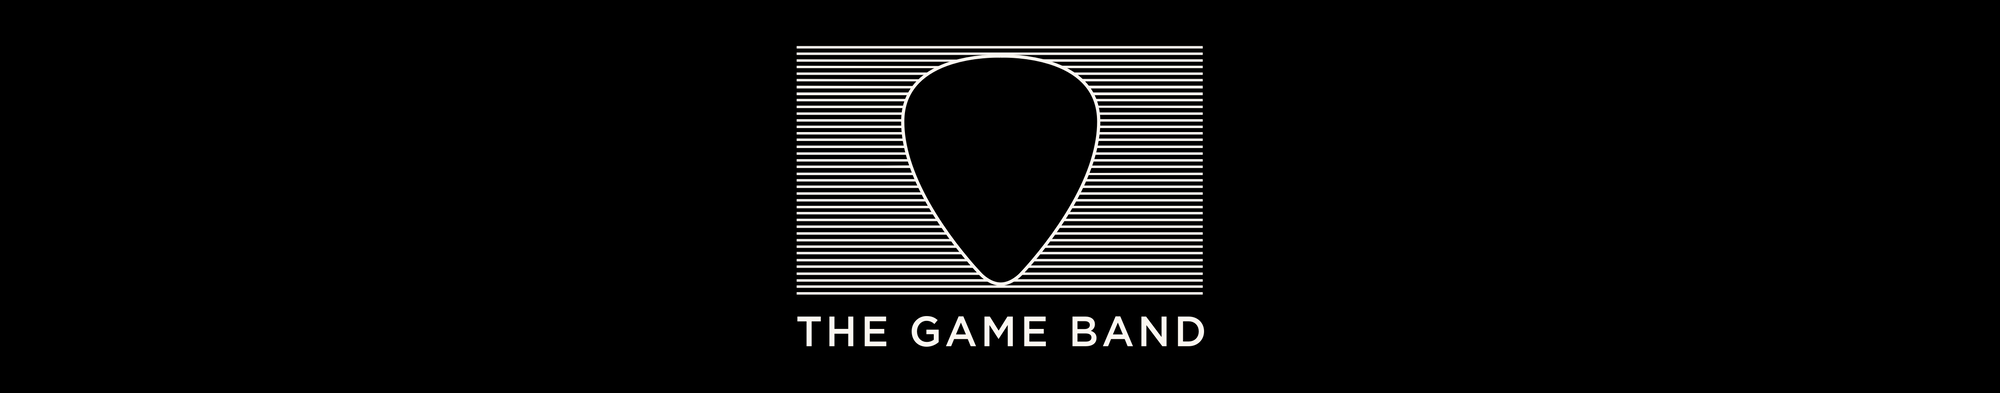 the game band banner